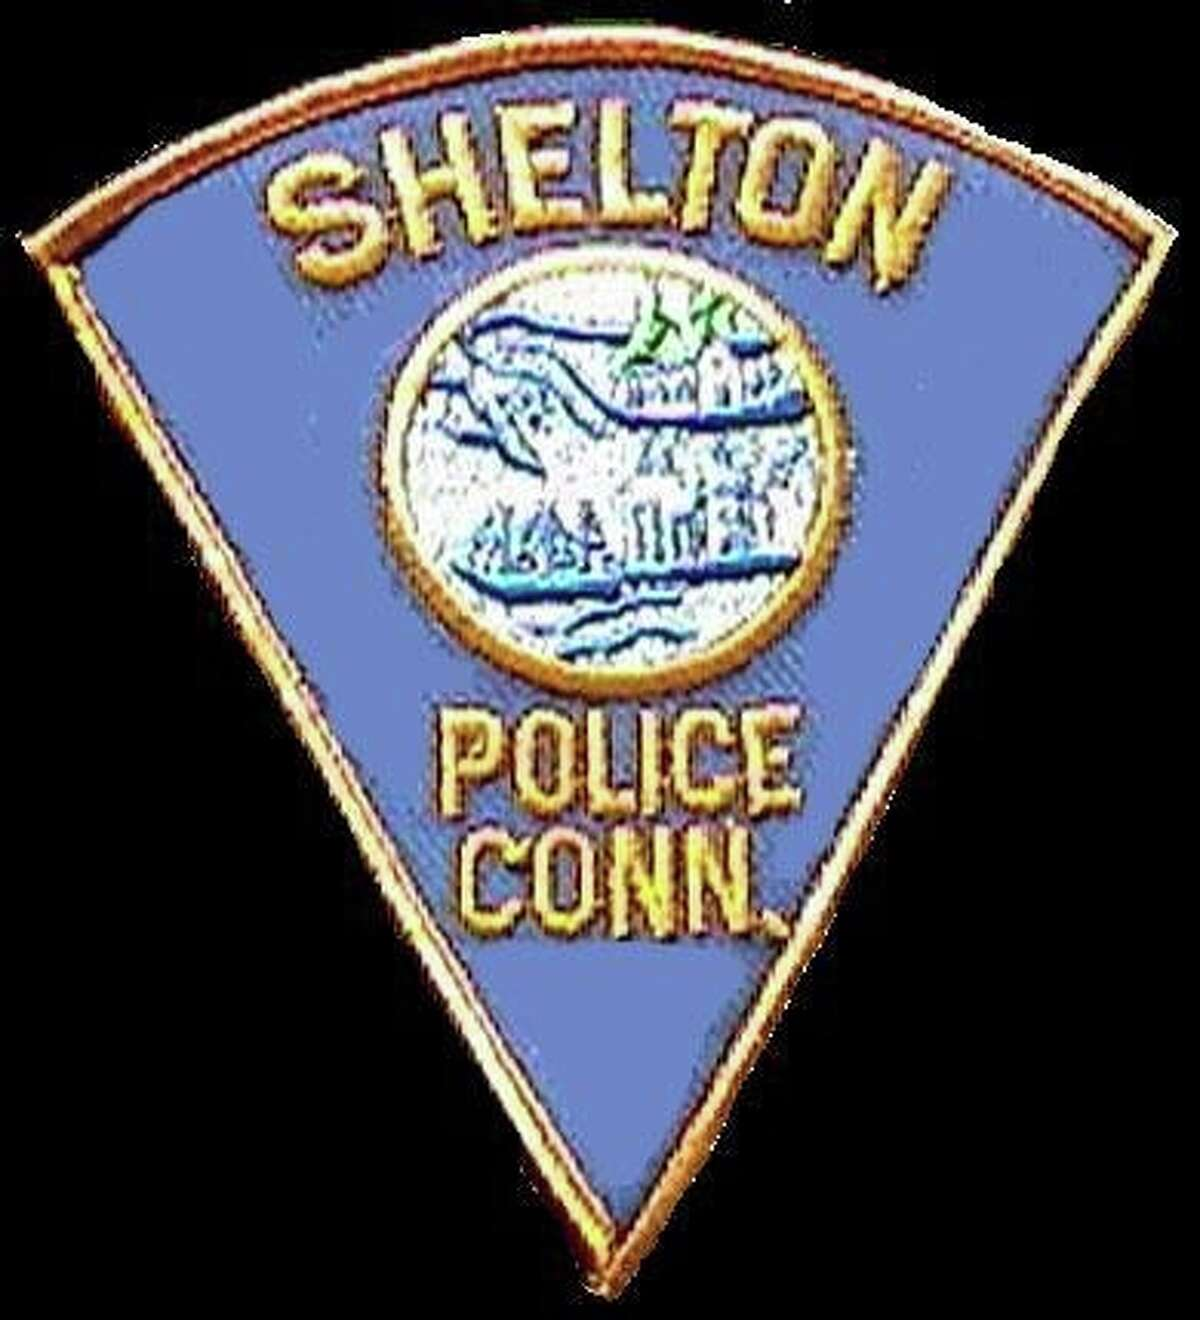 Shelton police have filed new charges against two burglary suspects.